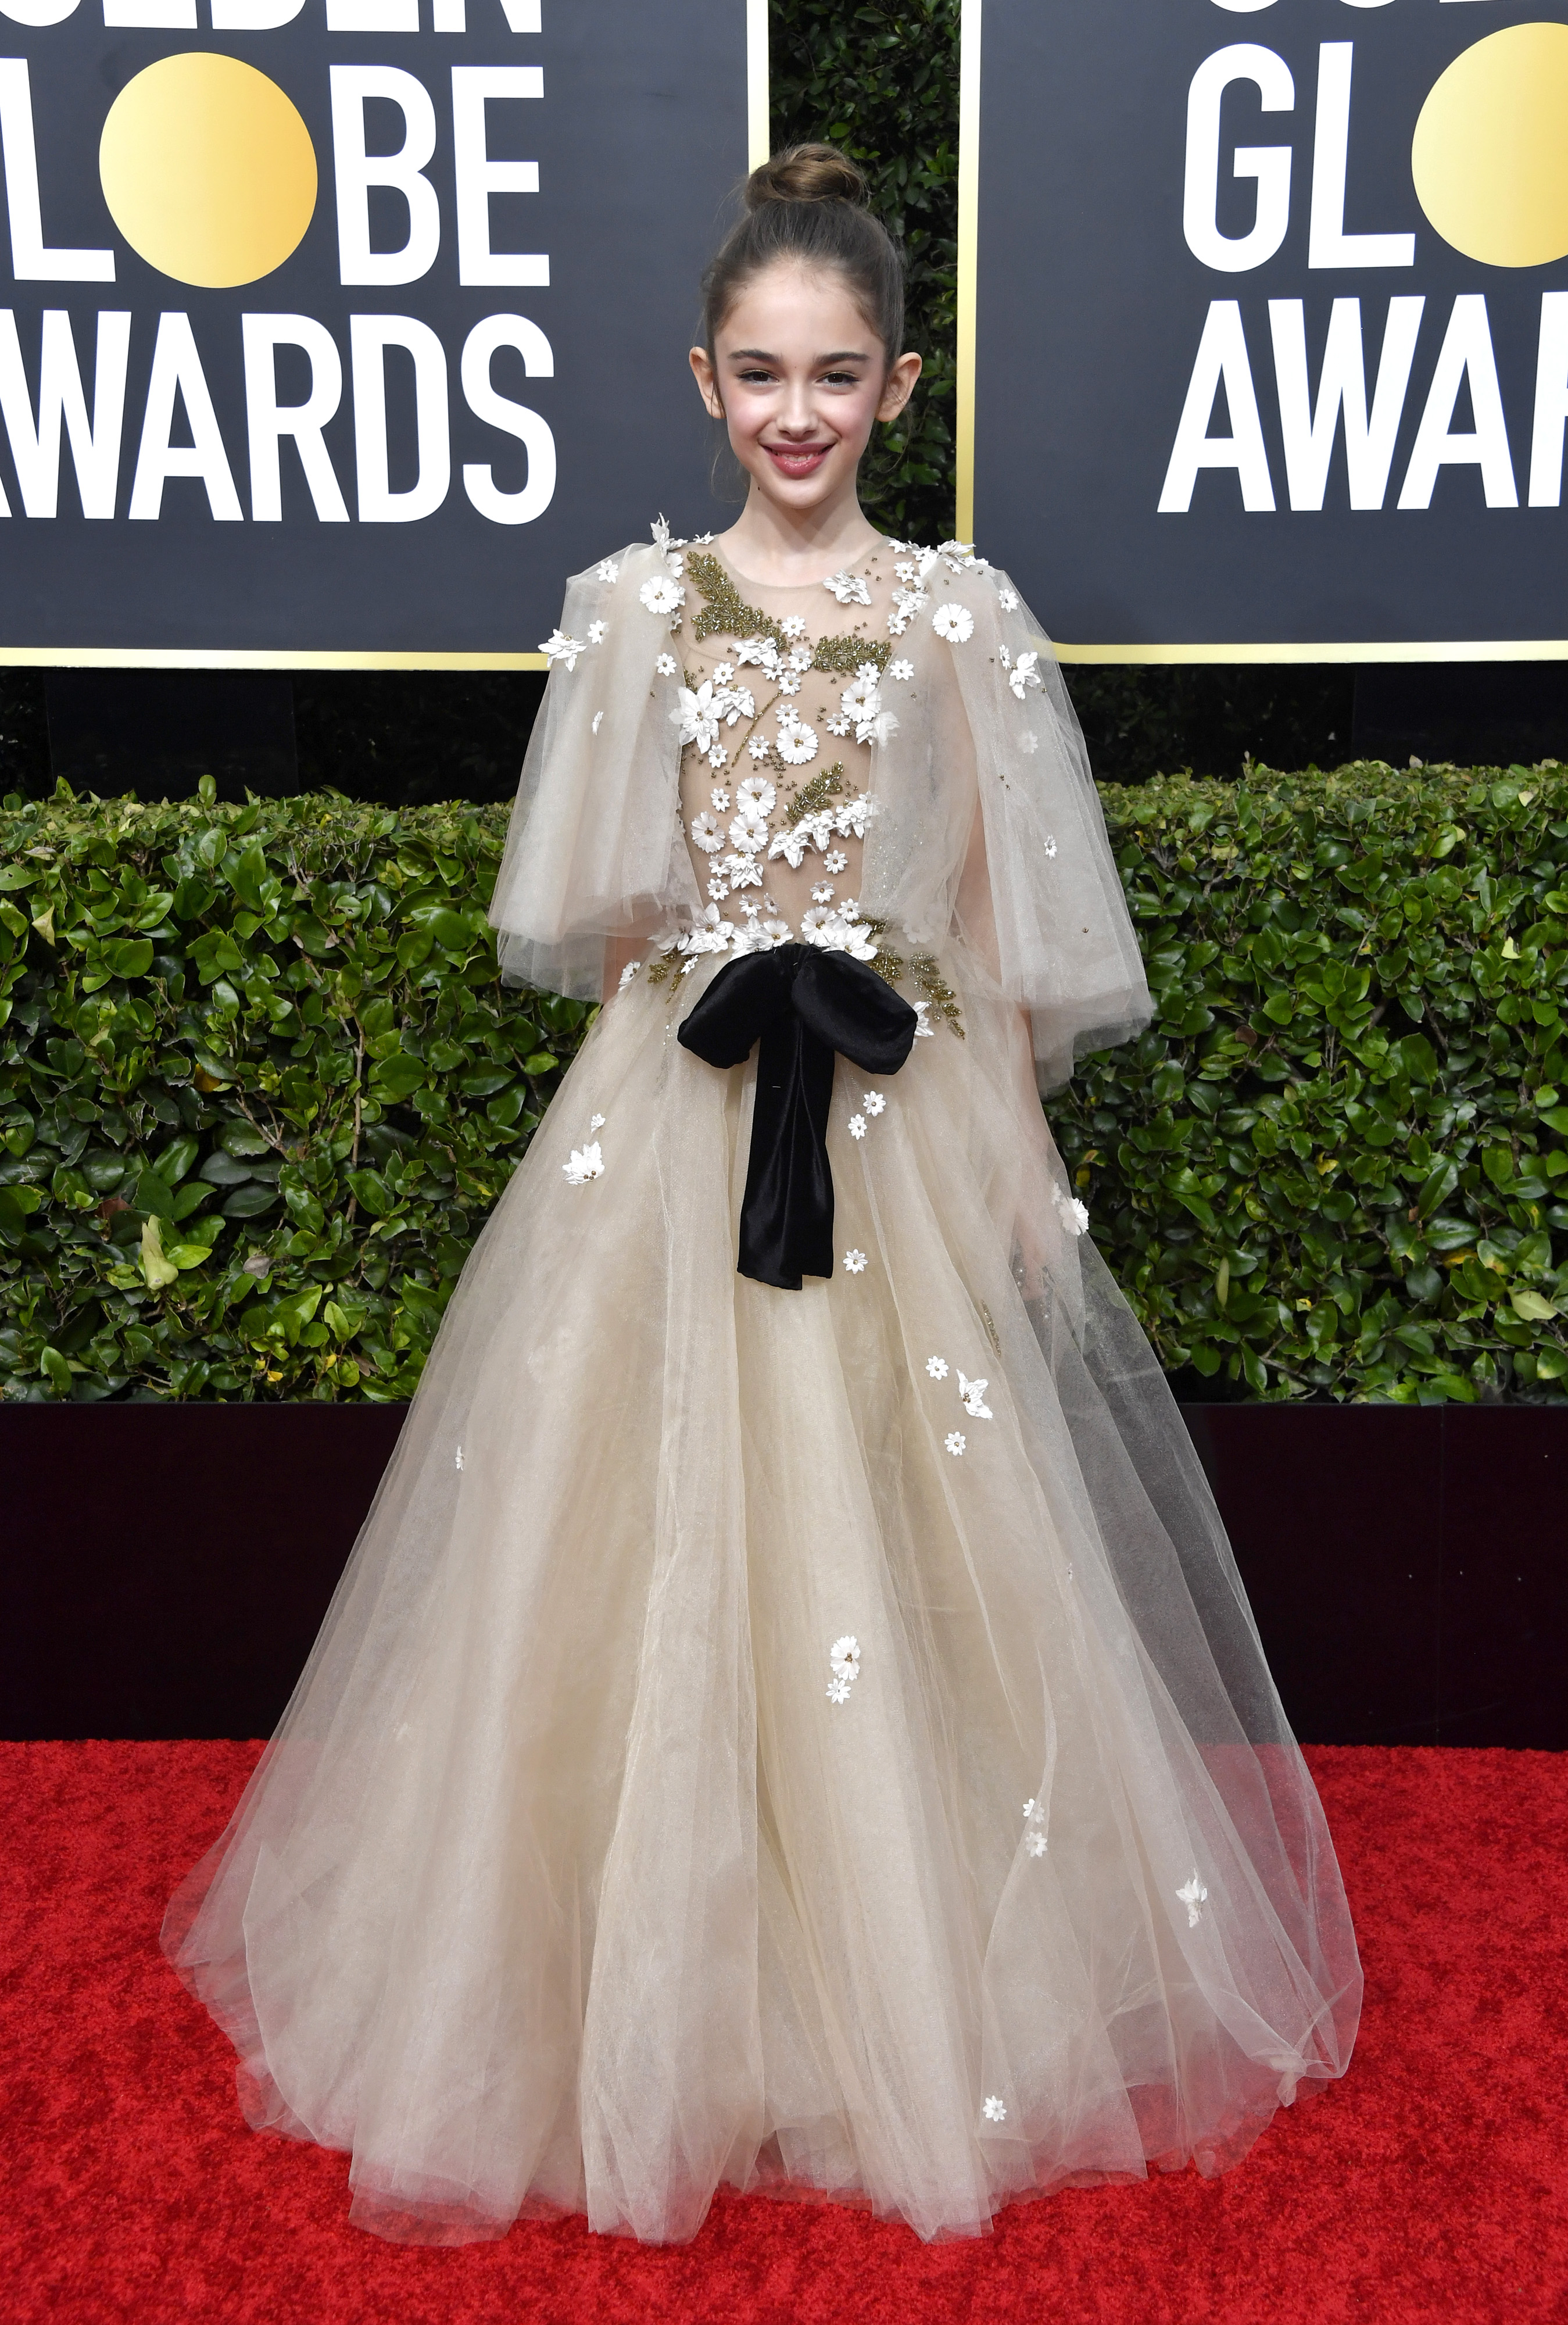 BEVERLY HILLS, CALIFORNIA - JANUARY 05: Julia Butters attends the 77th Annual Golden Globe Awards at The Beverly Hilton Hotel on January 05, 2020 in Beverly Hills, California. (Photo by Frazer Harrison/Getty Images)